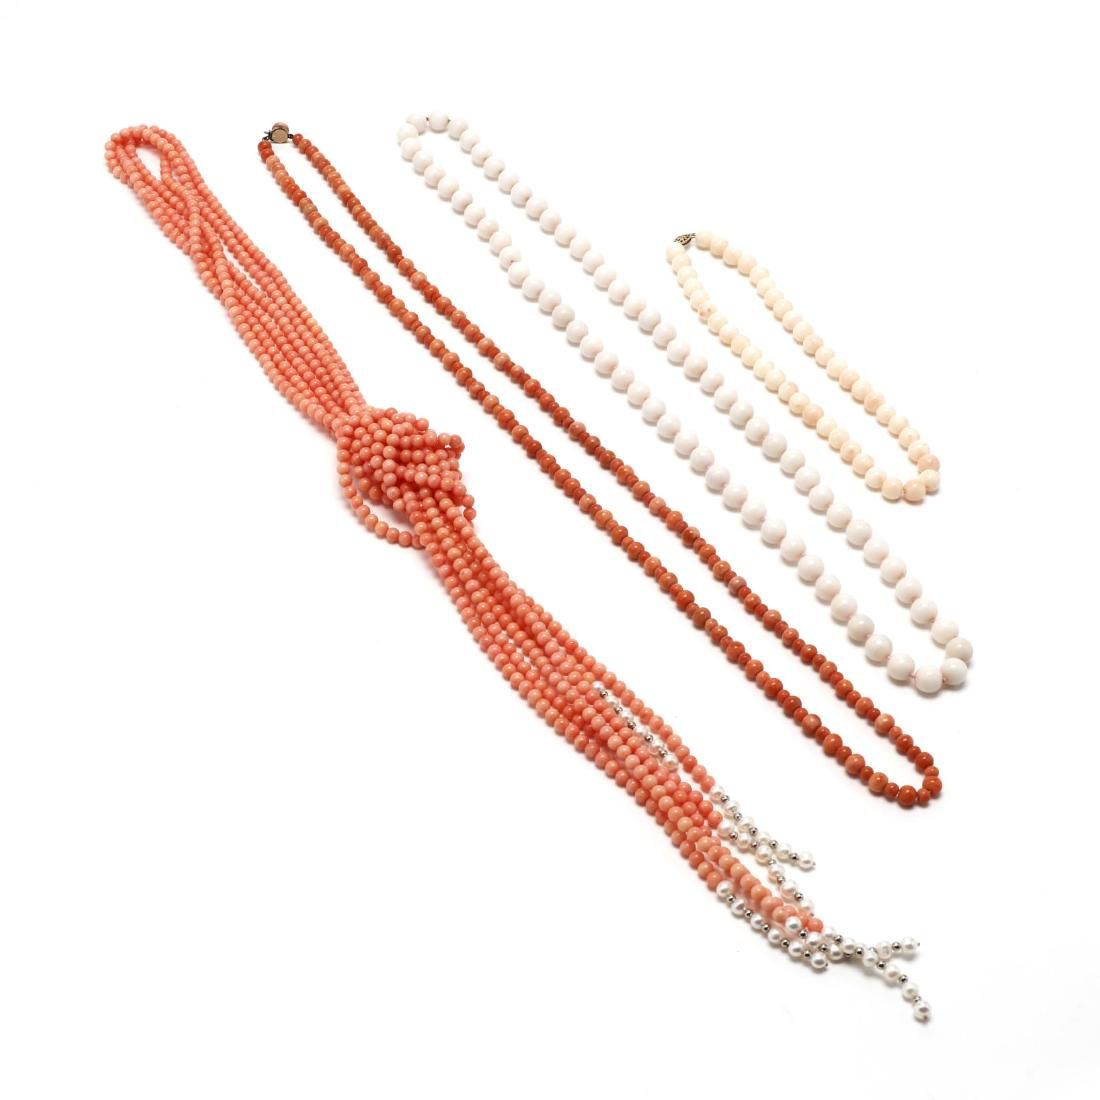 Four Coral Bead Necklaces